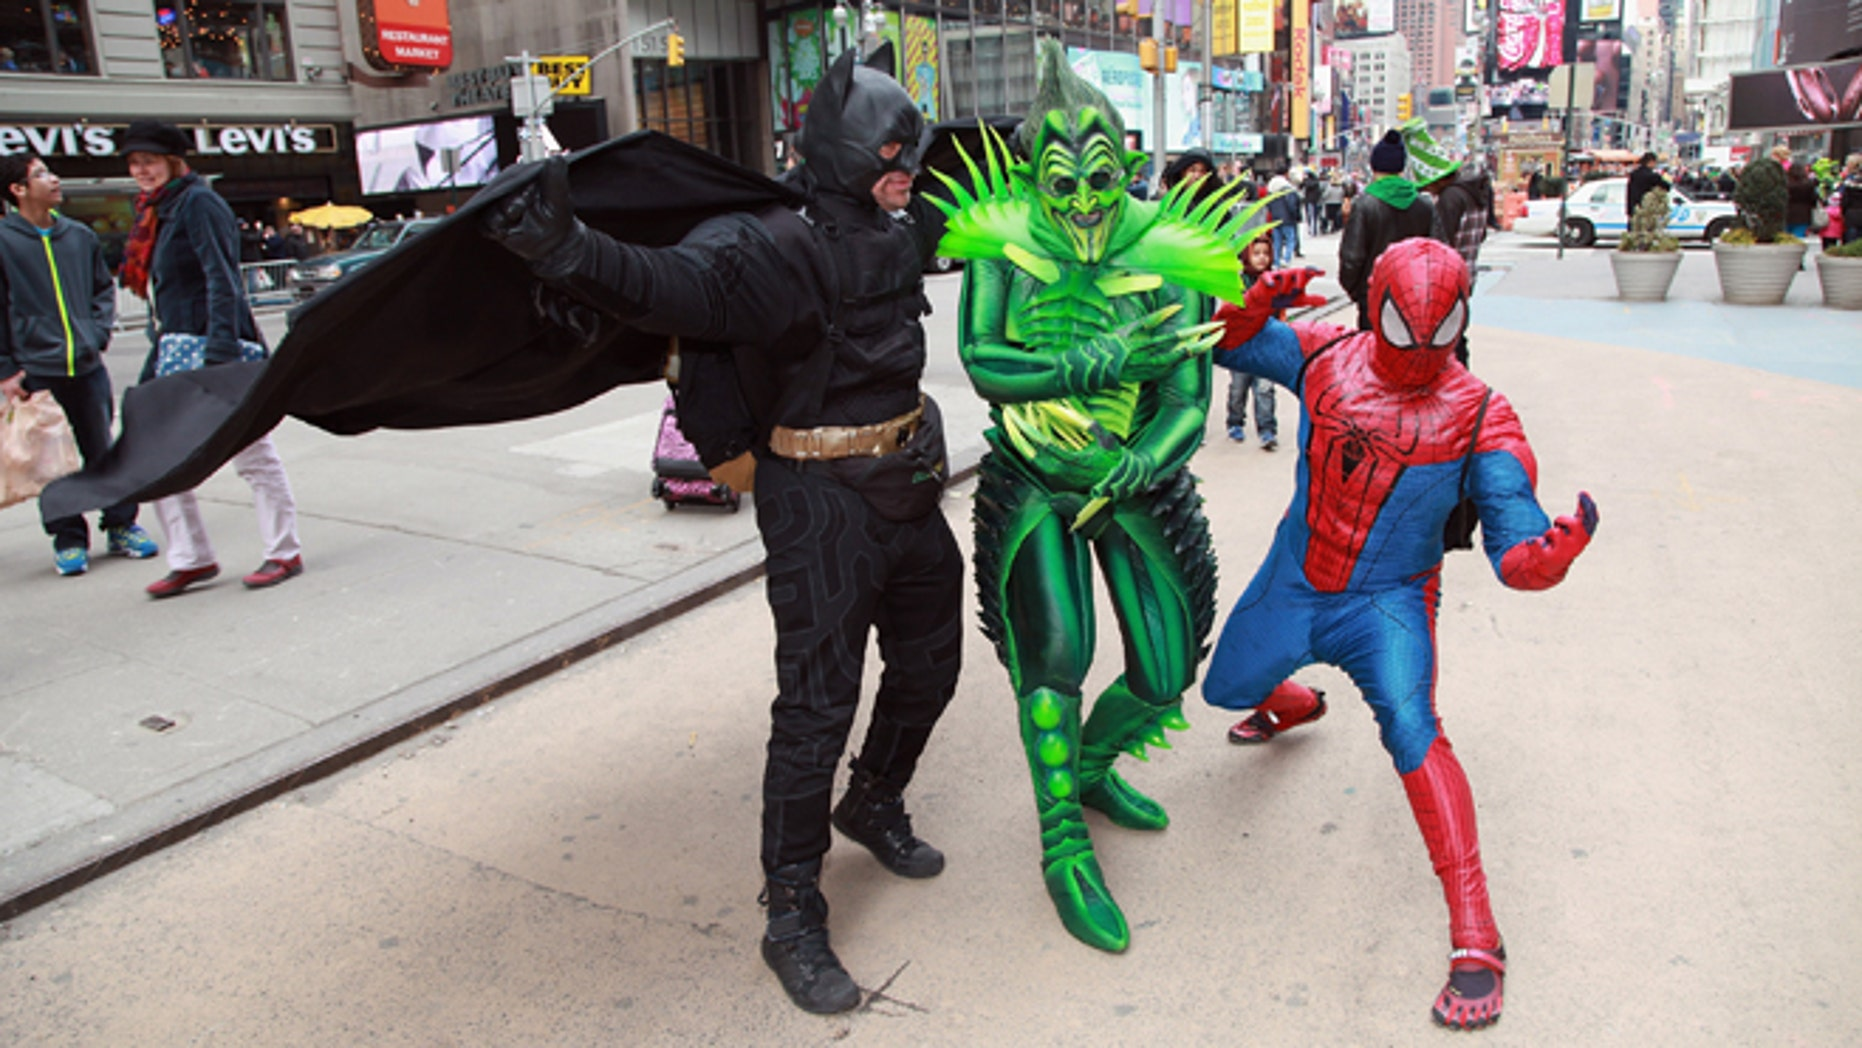 """NEW YORK, NY - MARCH 17:  The Green Goblin (Actor Bob Cuccioli) takes a stroll through Times Square for the """"Spider-Man: Turn off The Dark"""" St. Patrick's Day Celebration on March 17, 2013 in New York City.  (Photo by Taylor Hill/Getty Images)"""